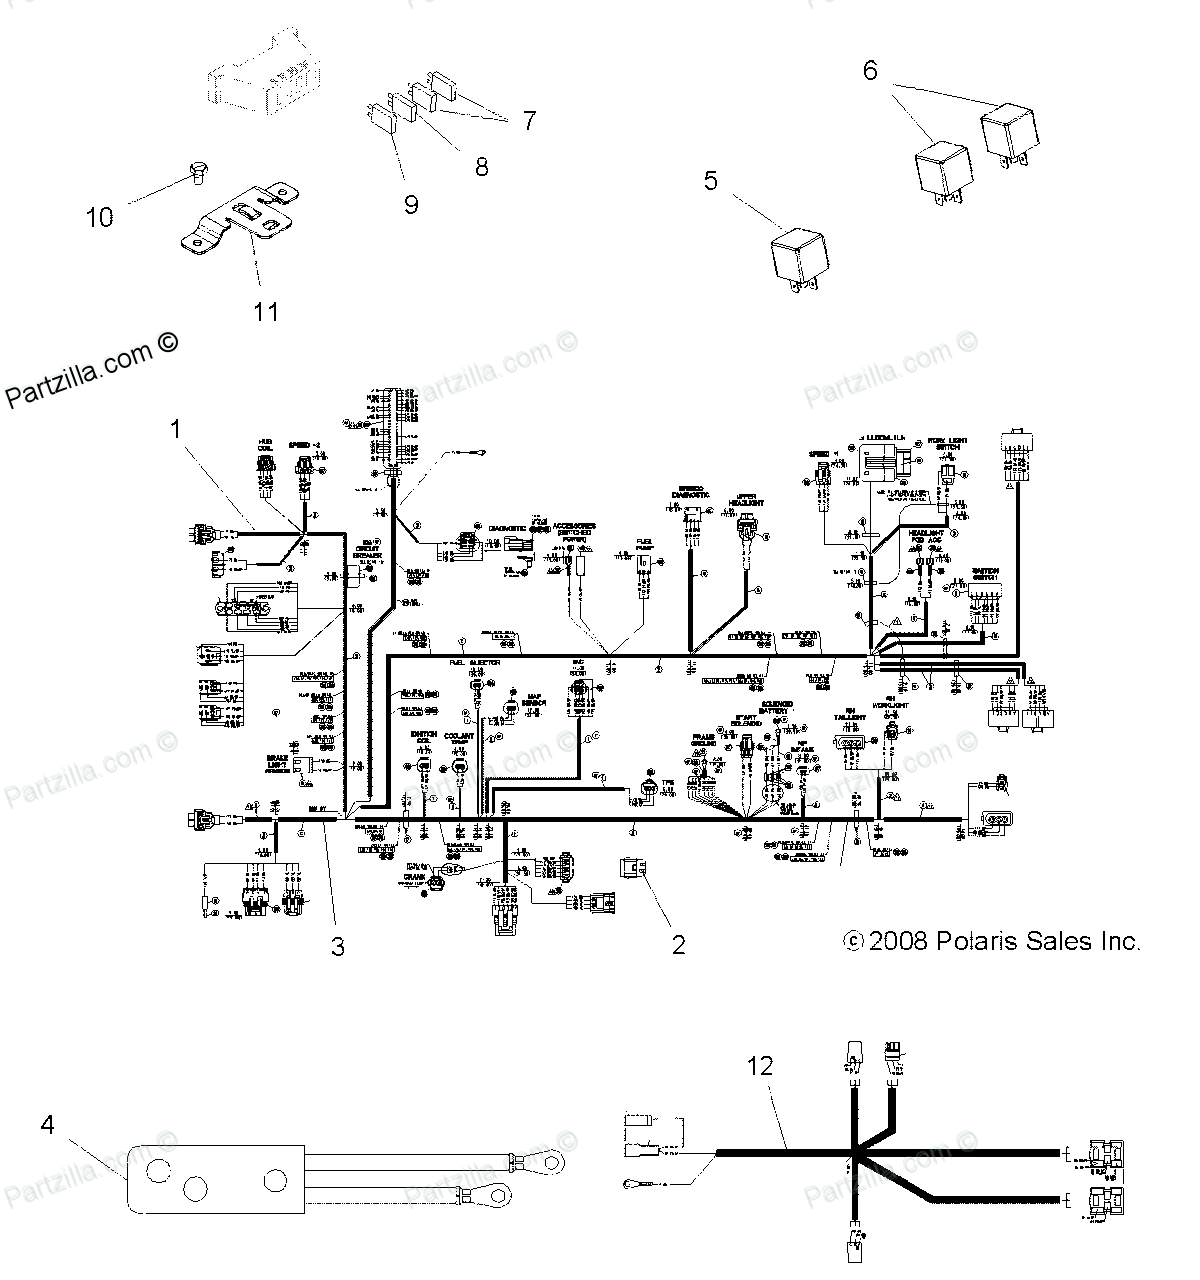 2005 Polaris Sportsman 600 Wiring Diagram